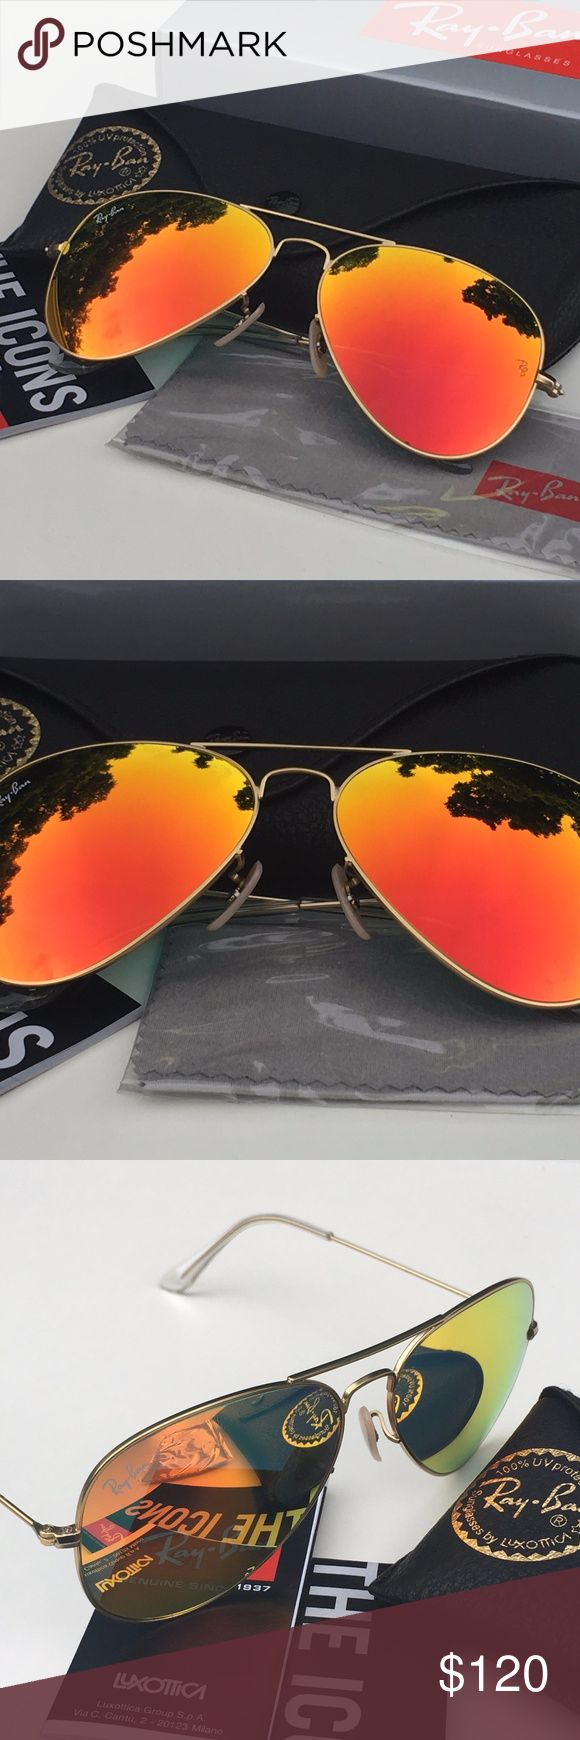 RAY-BAN AVIATOR Sunglasses - Orange Flash/Gold 100% AUTHENTIC & BRAND NEW  Original RAY-BAN AVIATOR Sunglasses Orange Flash - Gold Frame Model: RB3025 - 112/69 (58mm)   -----------------------------------------------------------------   Product Description: Brand: Ray-Ban (100% Authentic) Lens Color: Orange Flash Frame Color: Gold Model: RB3025 Color Code: 112/69 Size: 58mm/14/3N Gender: Unisex Made: Italy  Package Includes:  - Ray-Ban Outer Paper Box - Ray-Ban Carrying Case - Ray-Ban…